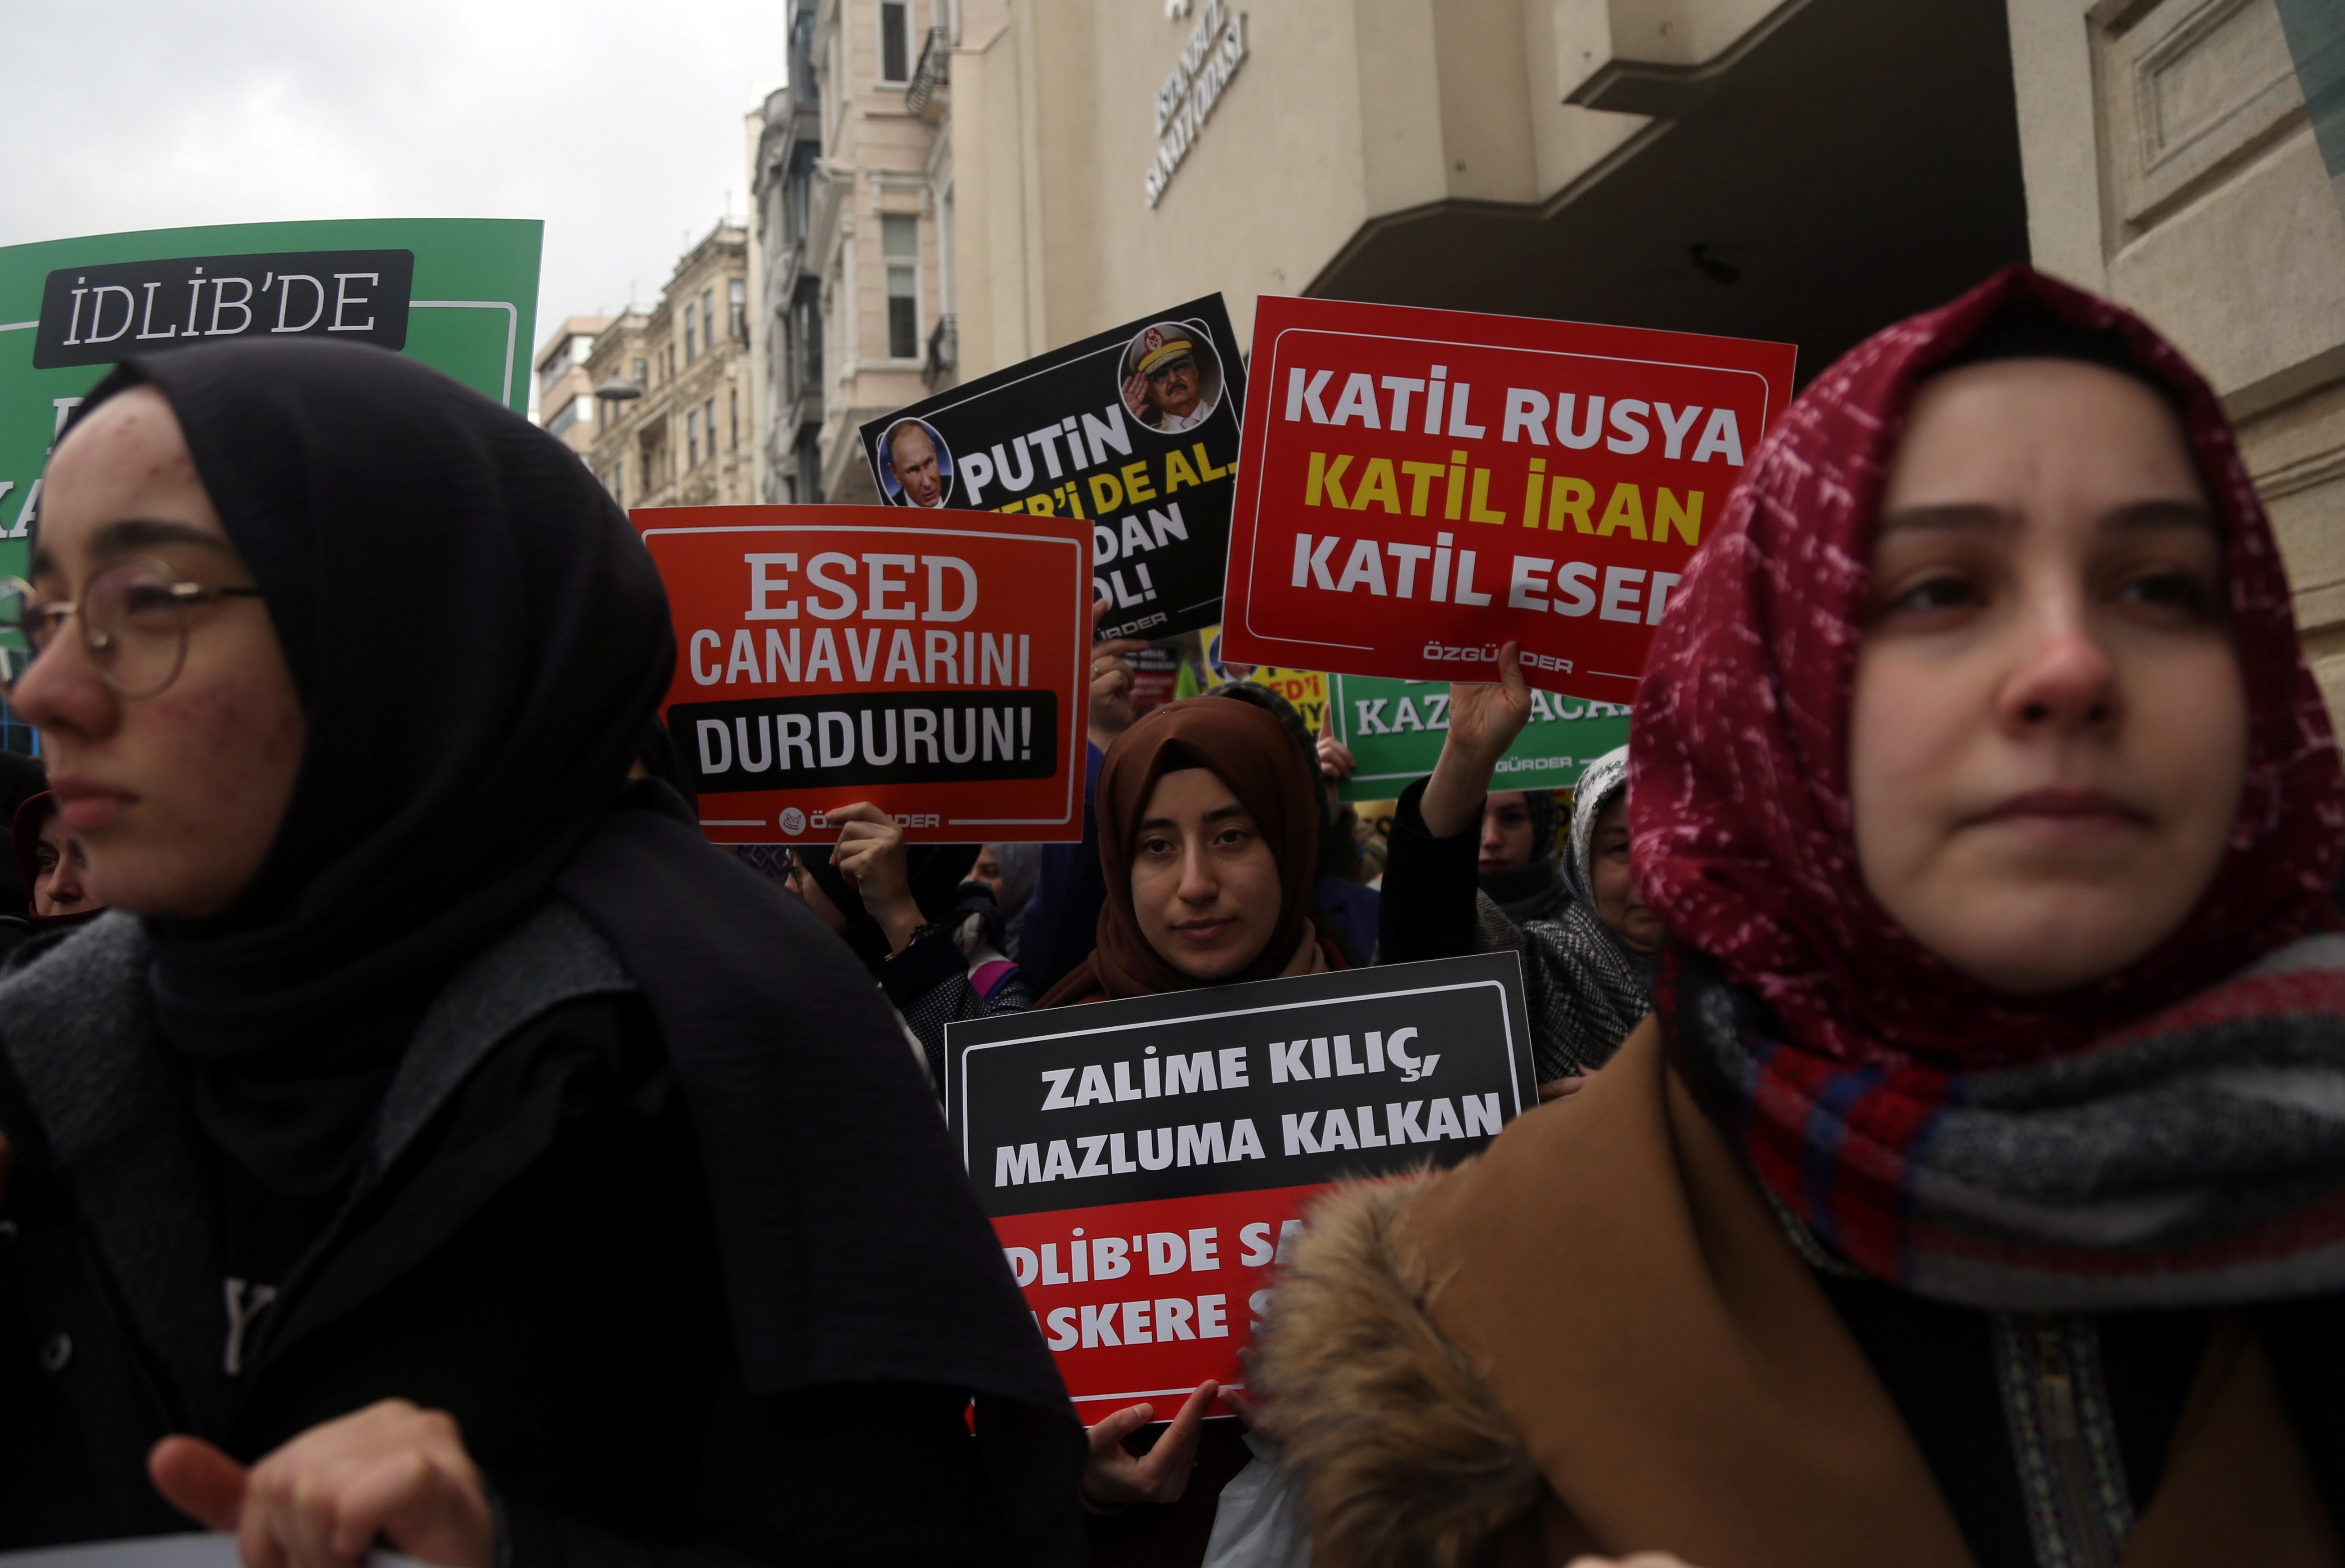 Demonstrators hold placards during a protest against killing of Turkish soldiers in Syria's Idlib region, near the Russian Consulate in Istanbul, Turkey, February 29, 2020